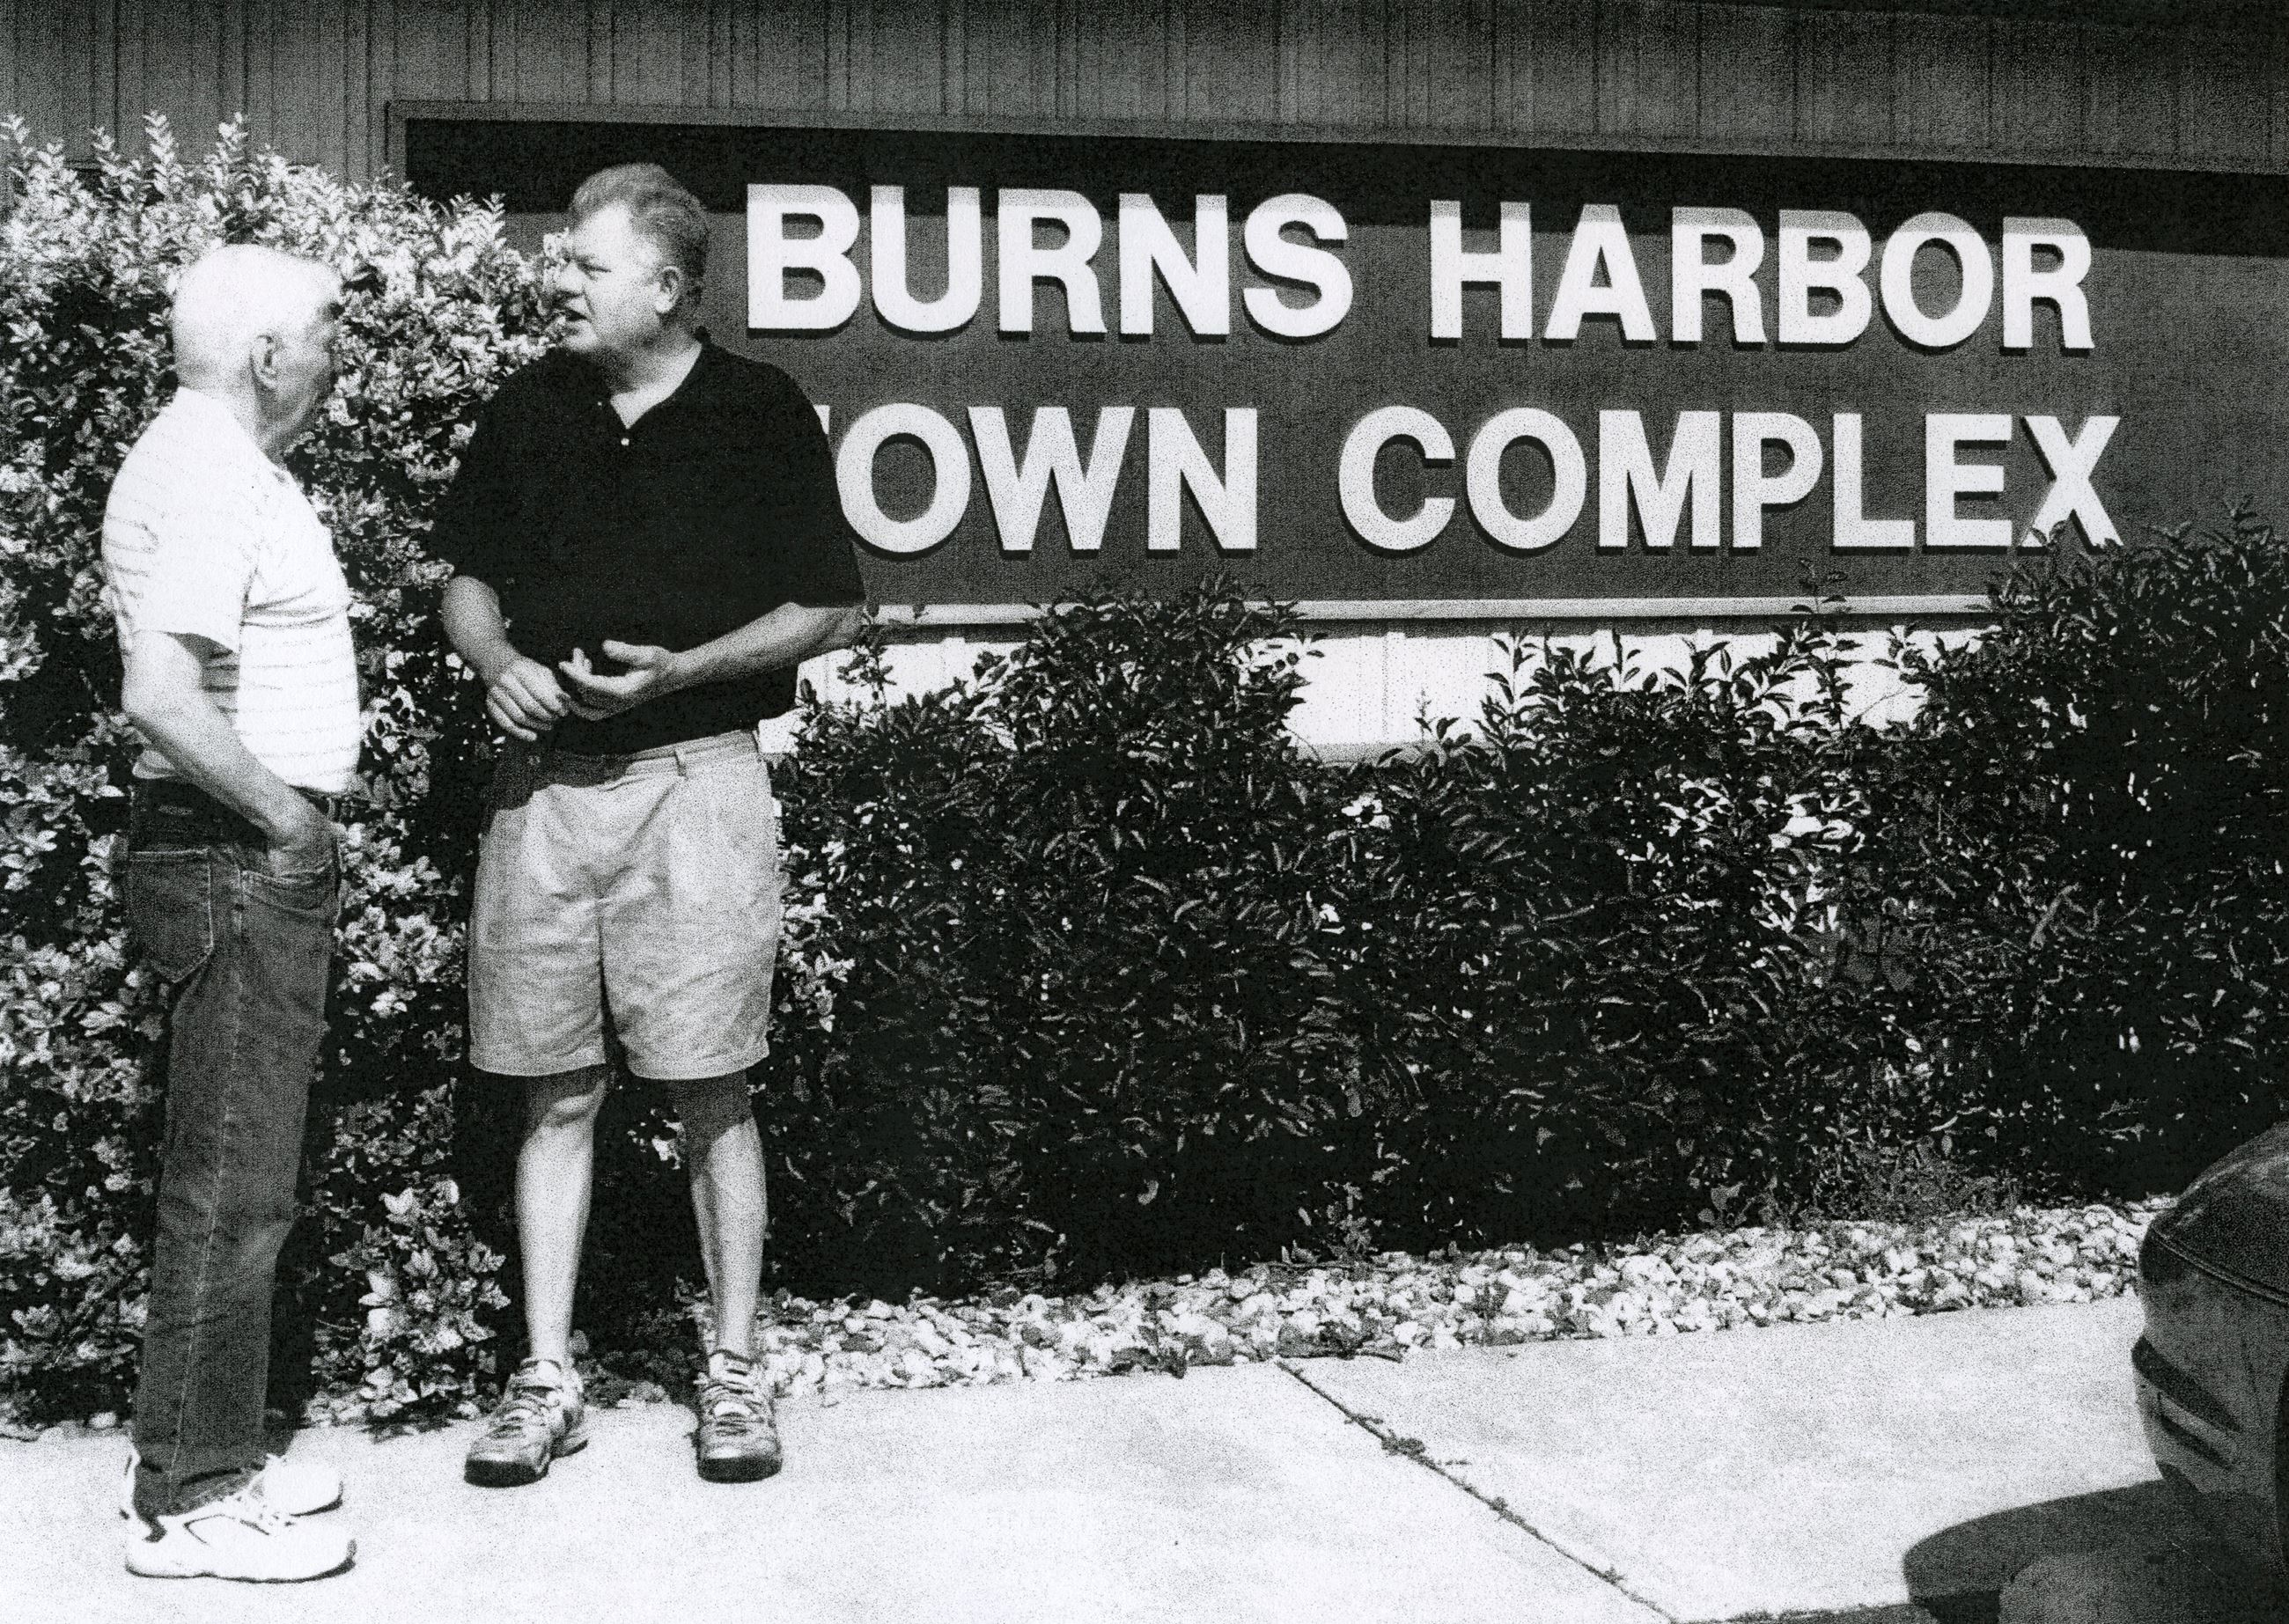 Burns Harbor Town Complex